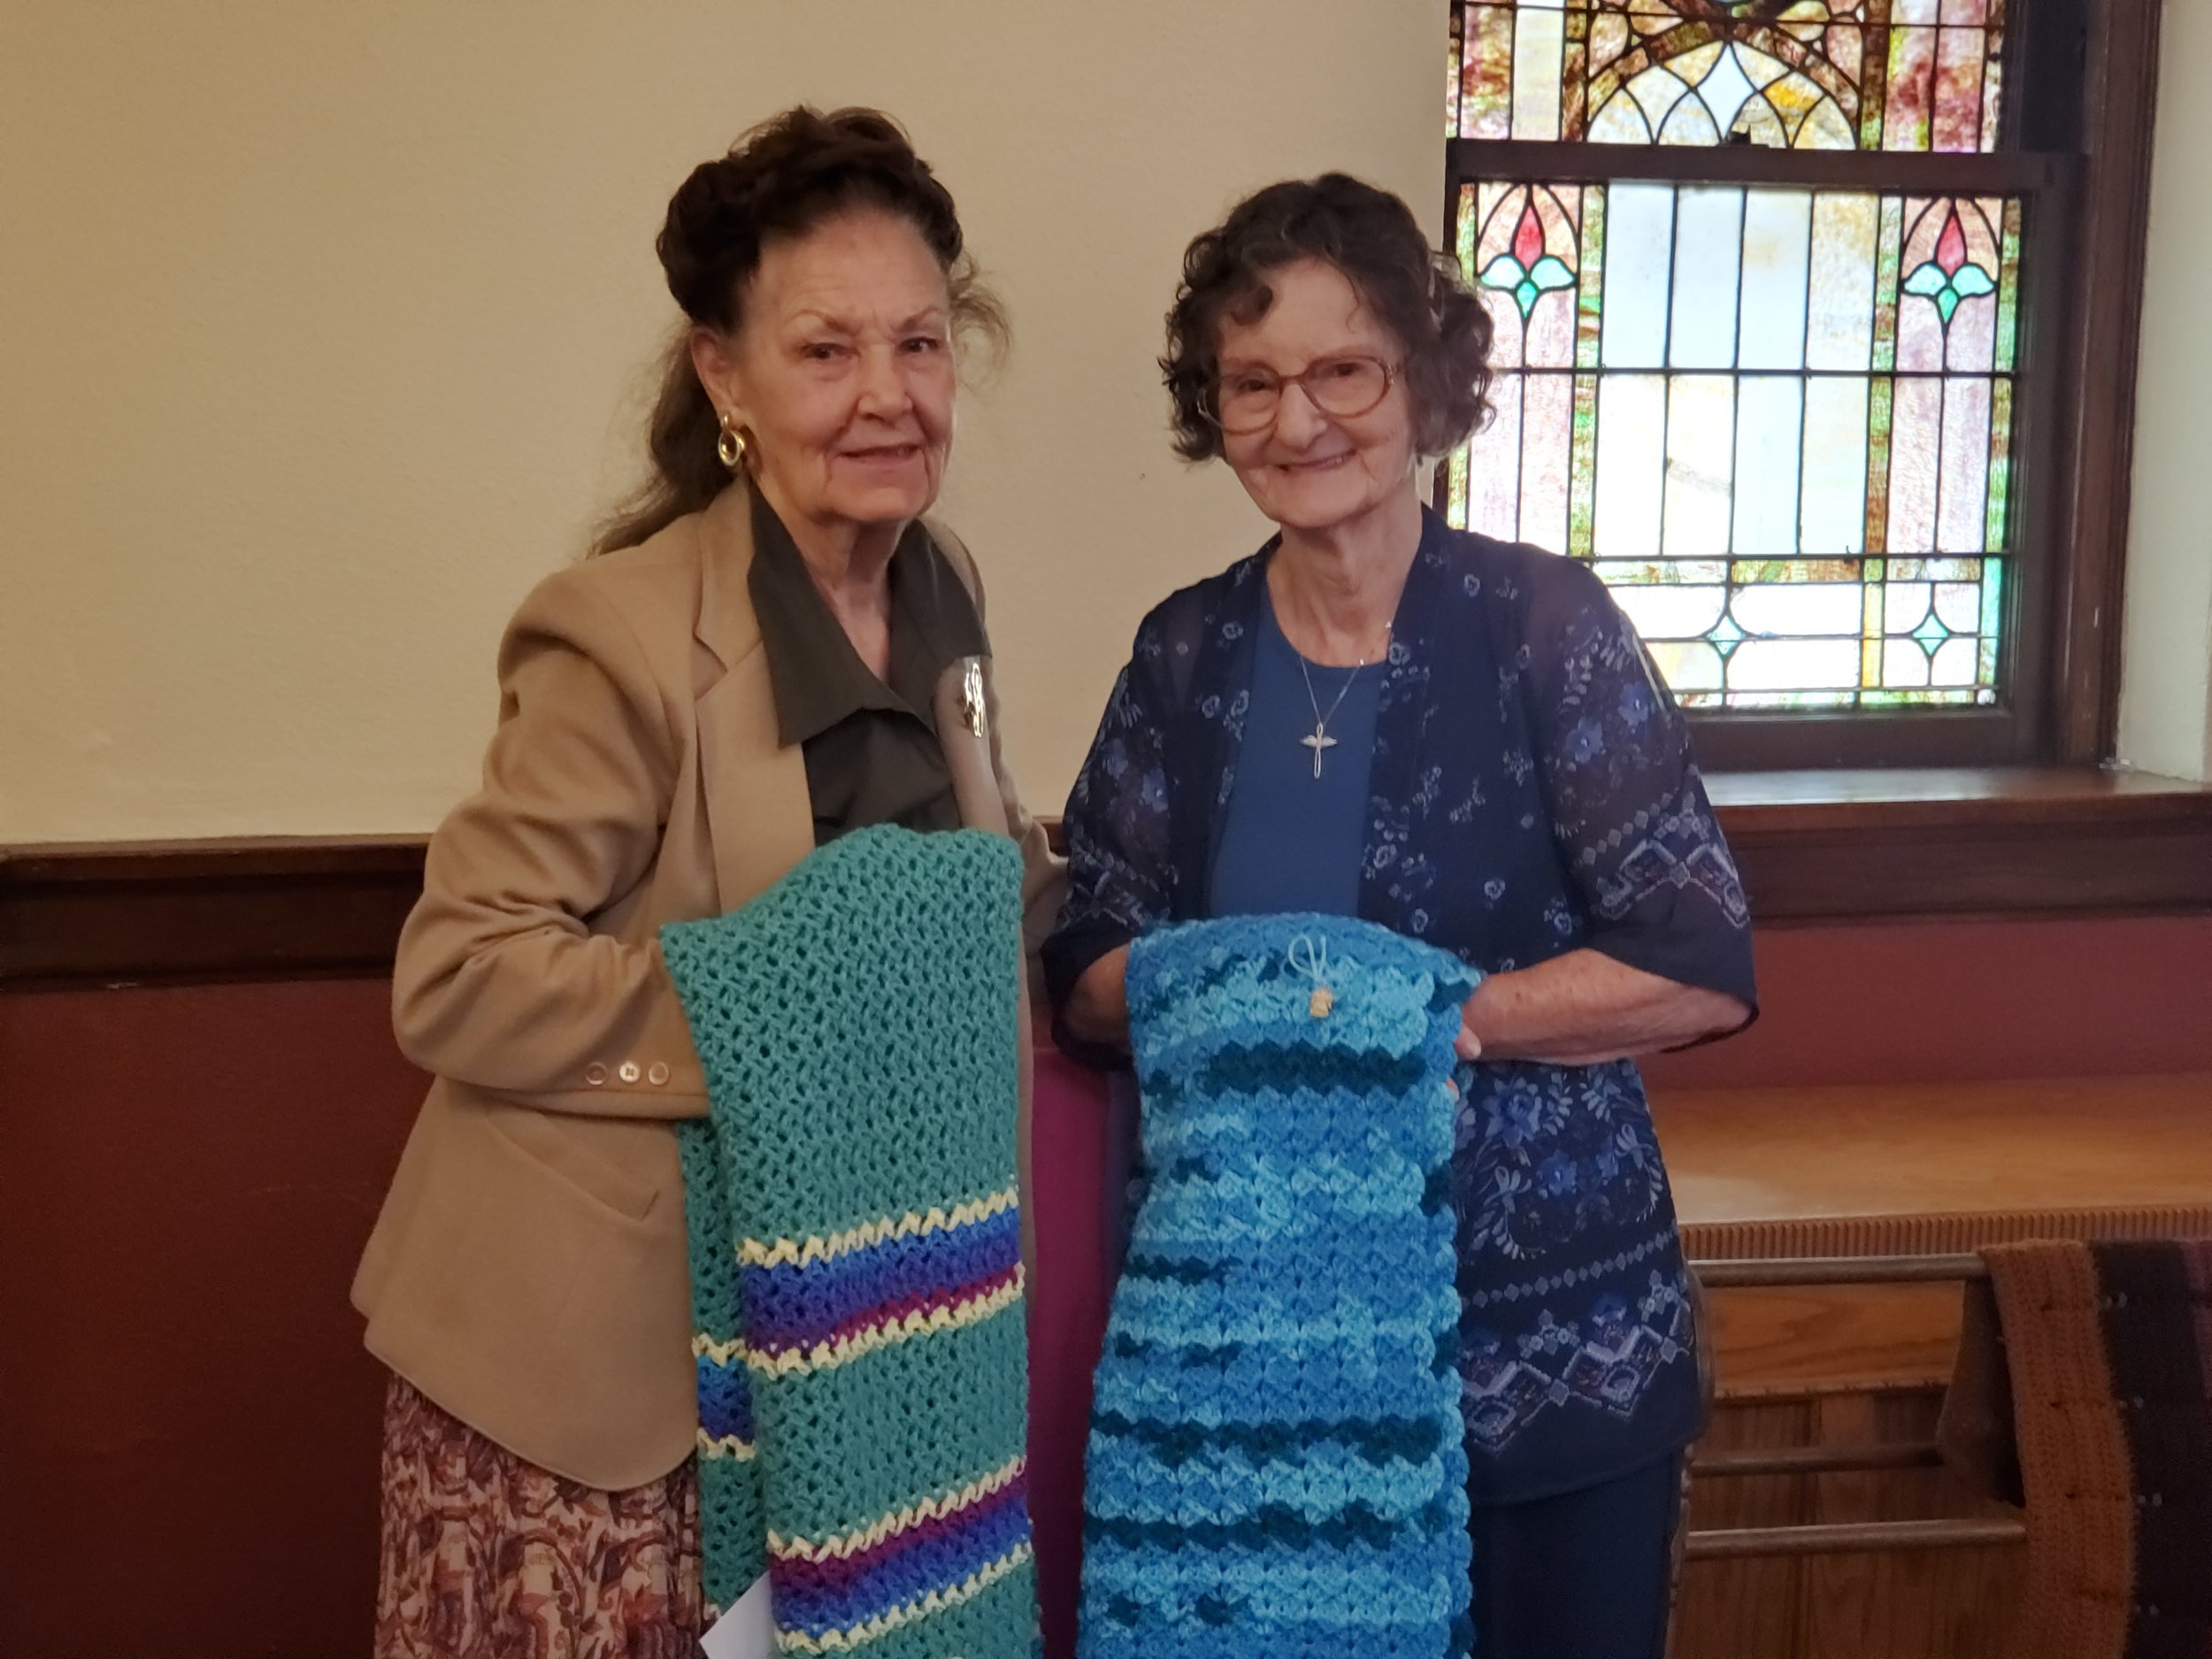 Jean Libby and Billie Fullerton, our Prayer Shawl Warriors.